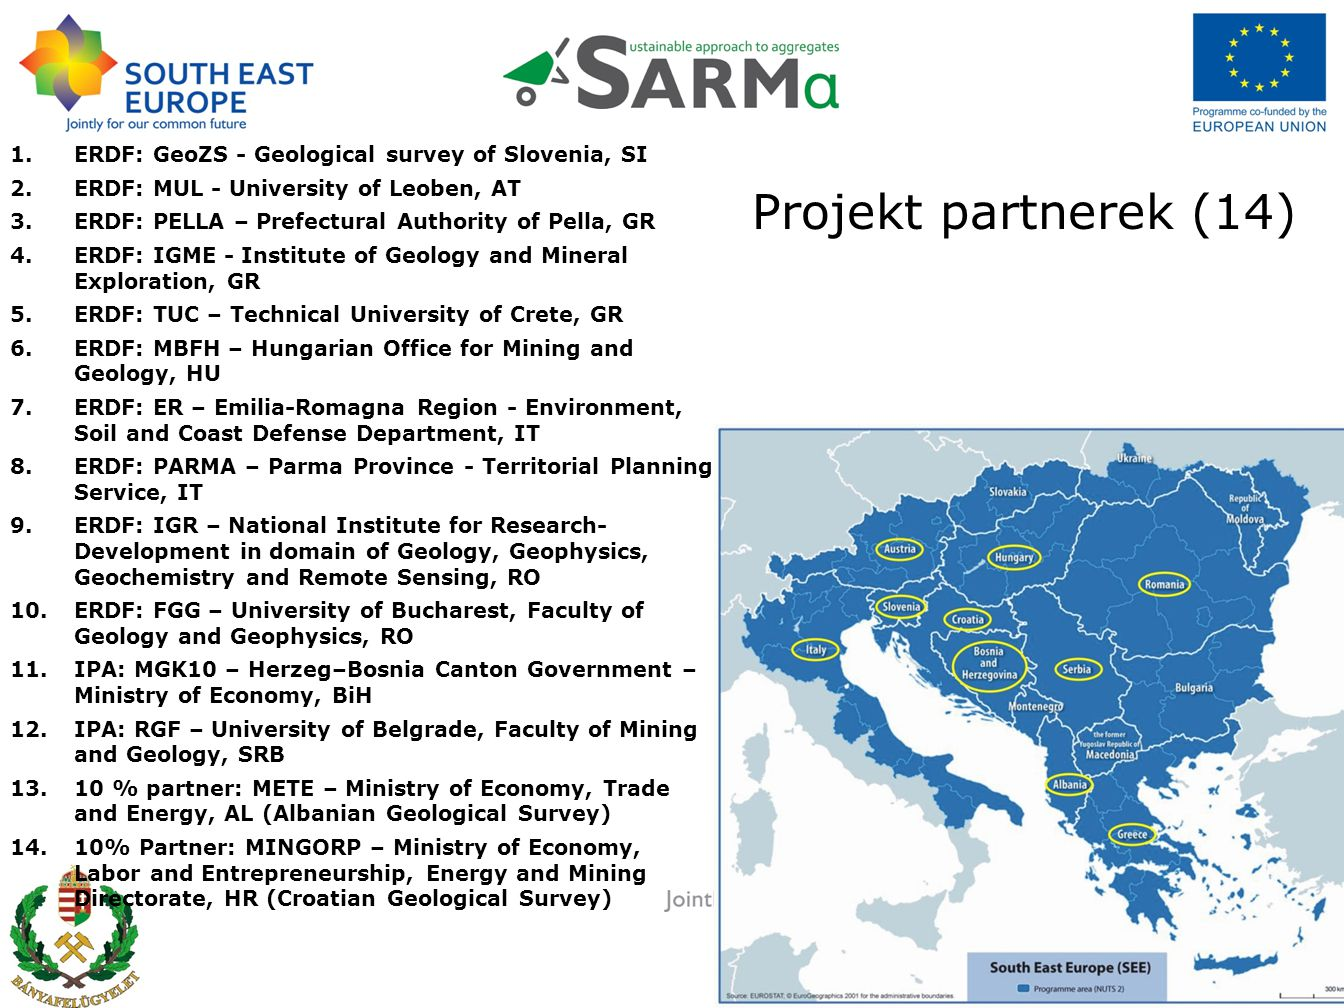 Projekt megfigyelők: 1.MGRS – Ministry of Economy of Slovenia, SI 2.ICMM – Independent Commission for Mines and Minerals, KOSOVO 3.HELLENIC – Hellenic Quarries S.A., GR 4.PAVLIDES – Pavlides S.A., GR 5.RCM – Region of Central Macedonia, GR 6.ACHAIA – Prefecture of Achaia, GR 7.NAMR – National Agency for Mineral Resources, RO 8.WKNOE – Lower Austria Economic Chamber, Crafts and Trades Division, AT 9.…..